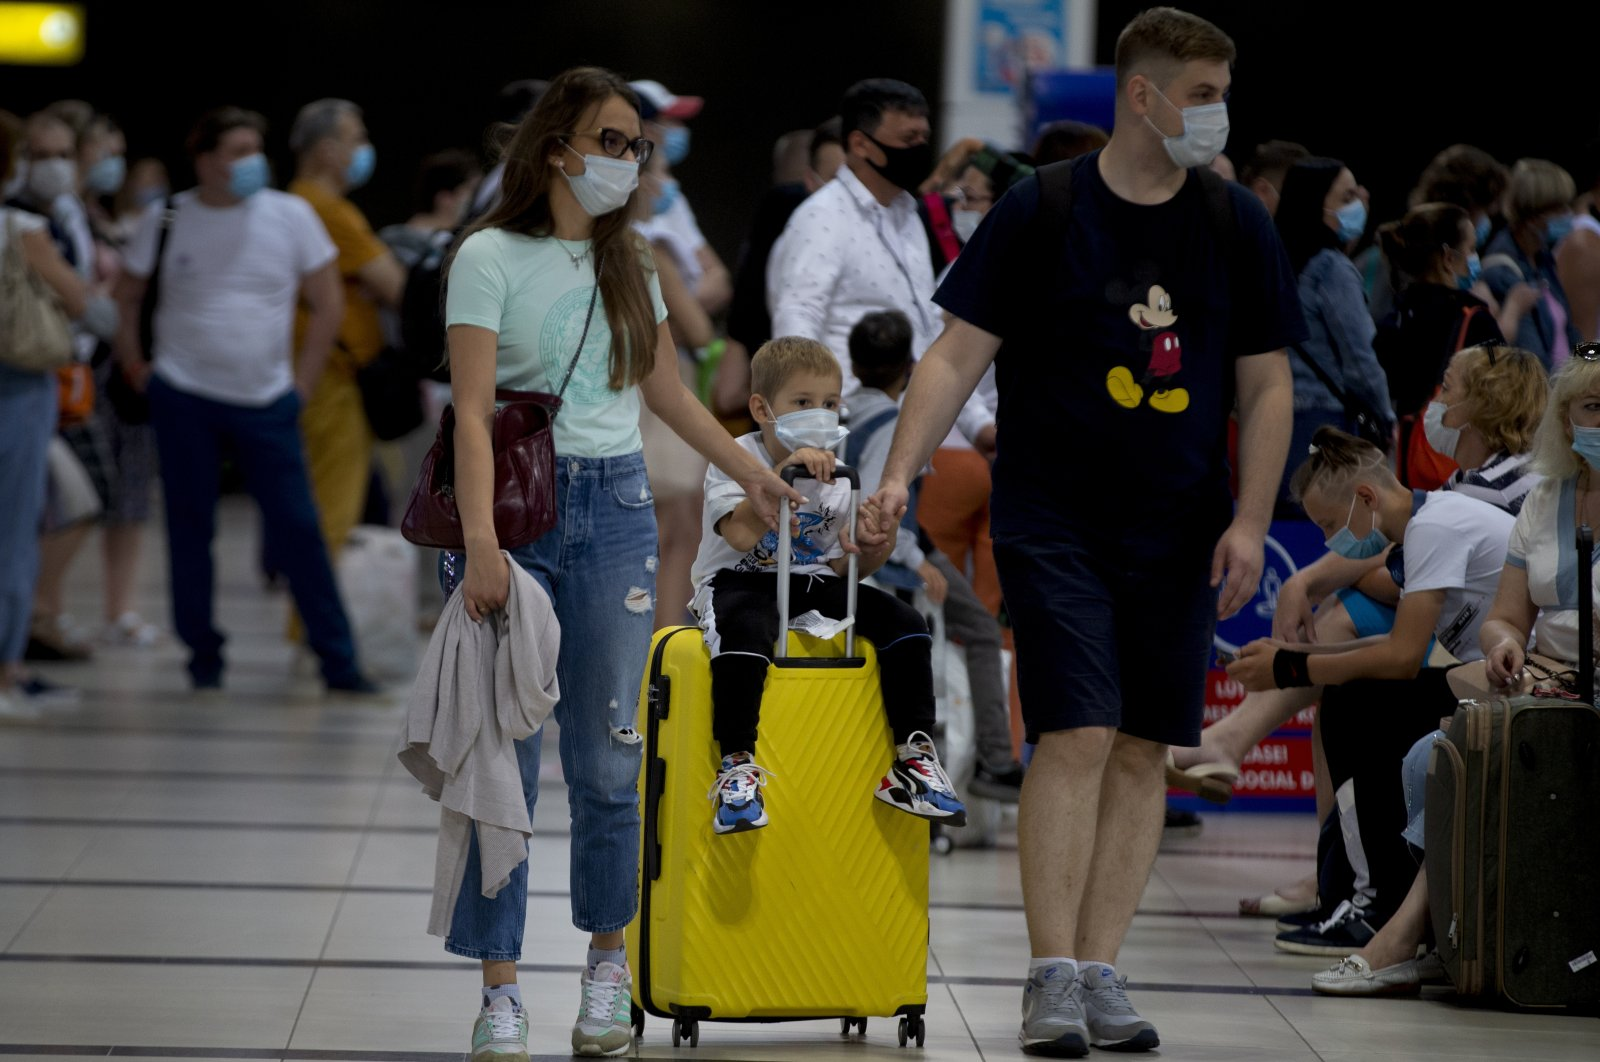 Russian tourists arrive at Antalya Airport after flights resumed between Russia and Turkey, in Antalya, southern Turkey, Aug. 10, 2020. (AA Photo)